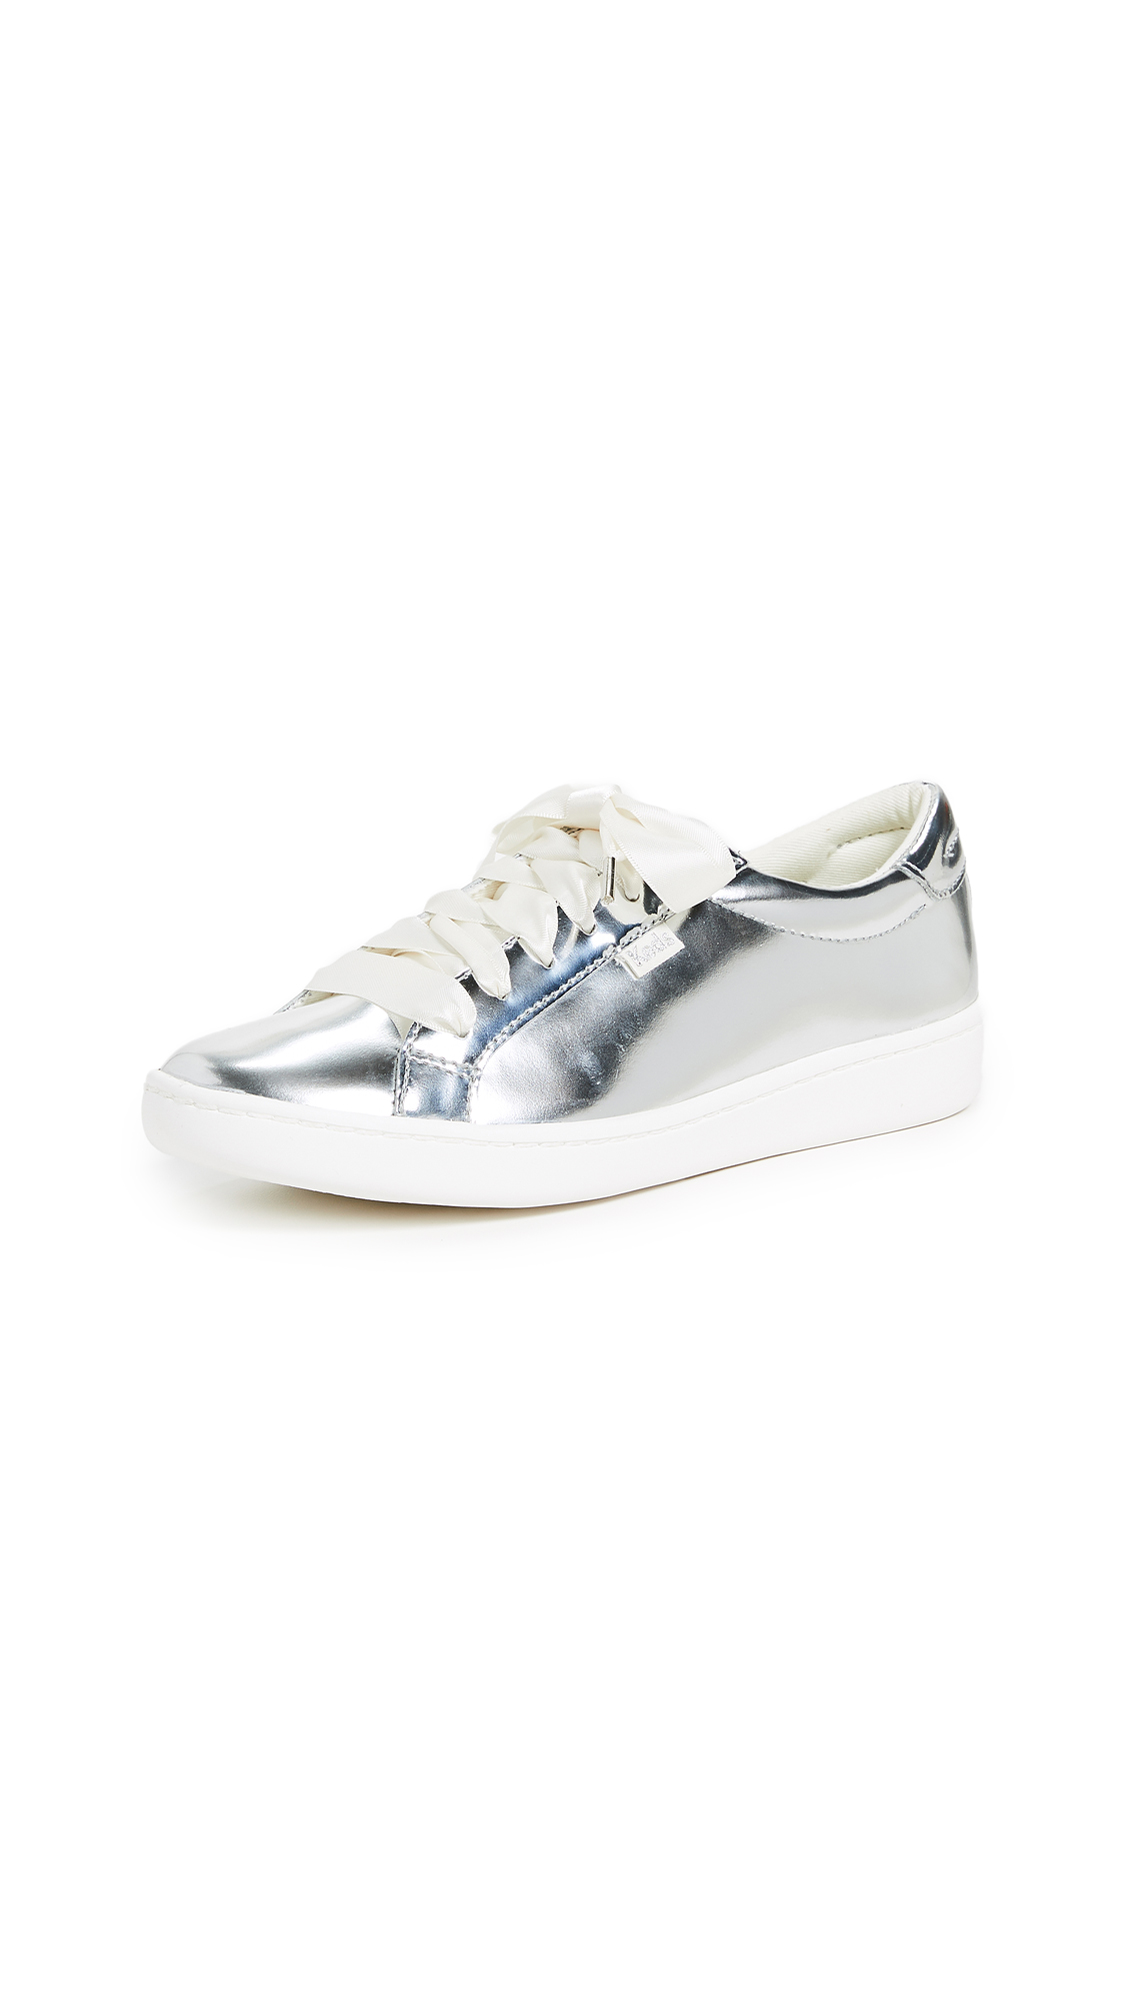 Keds x Kate Spade Ace Sneakers - Silver